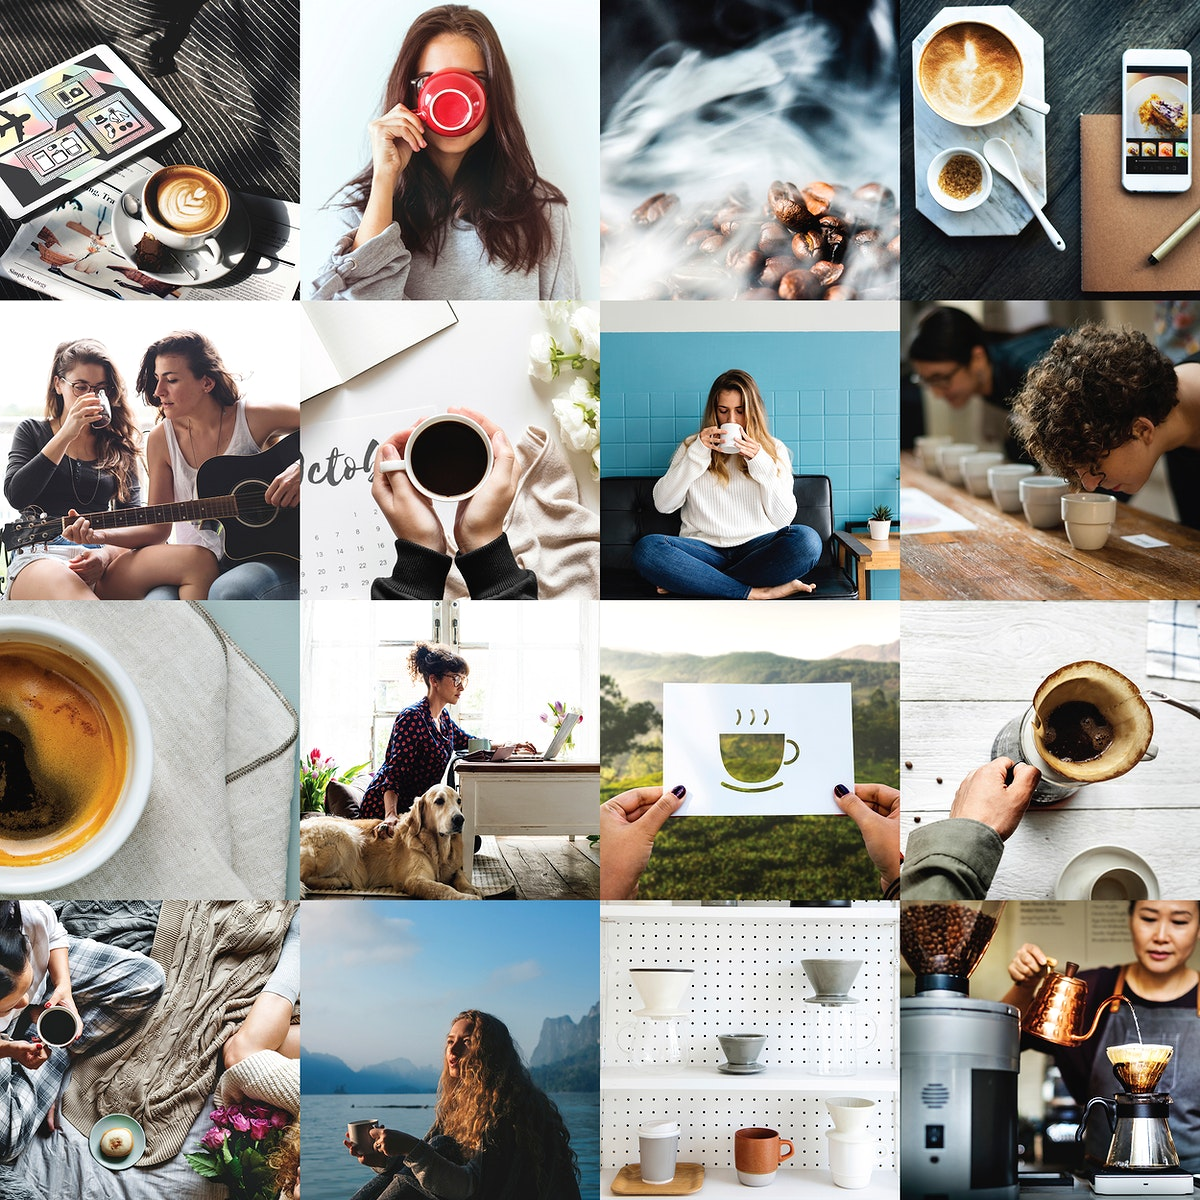 Compilation of coffee themed images